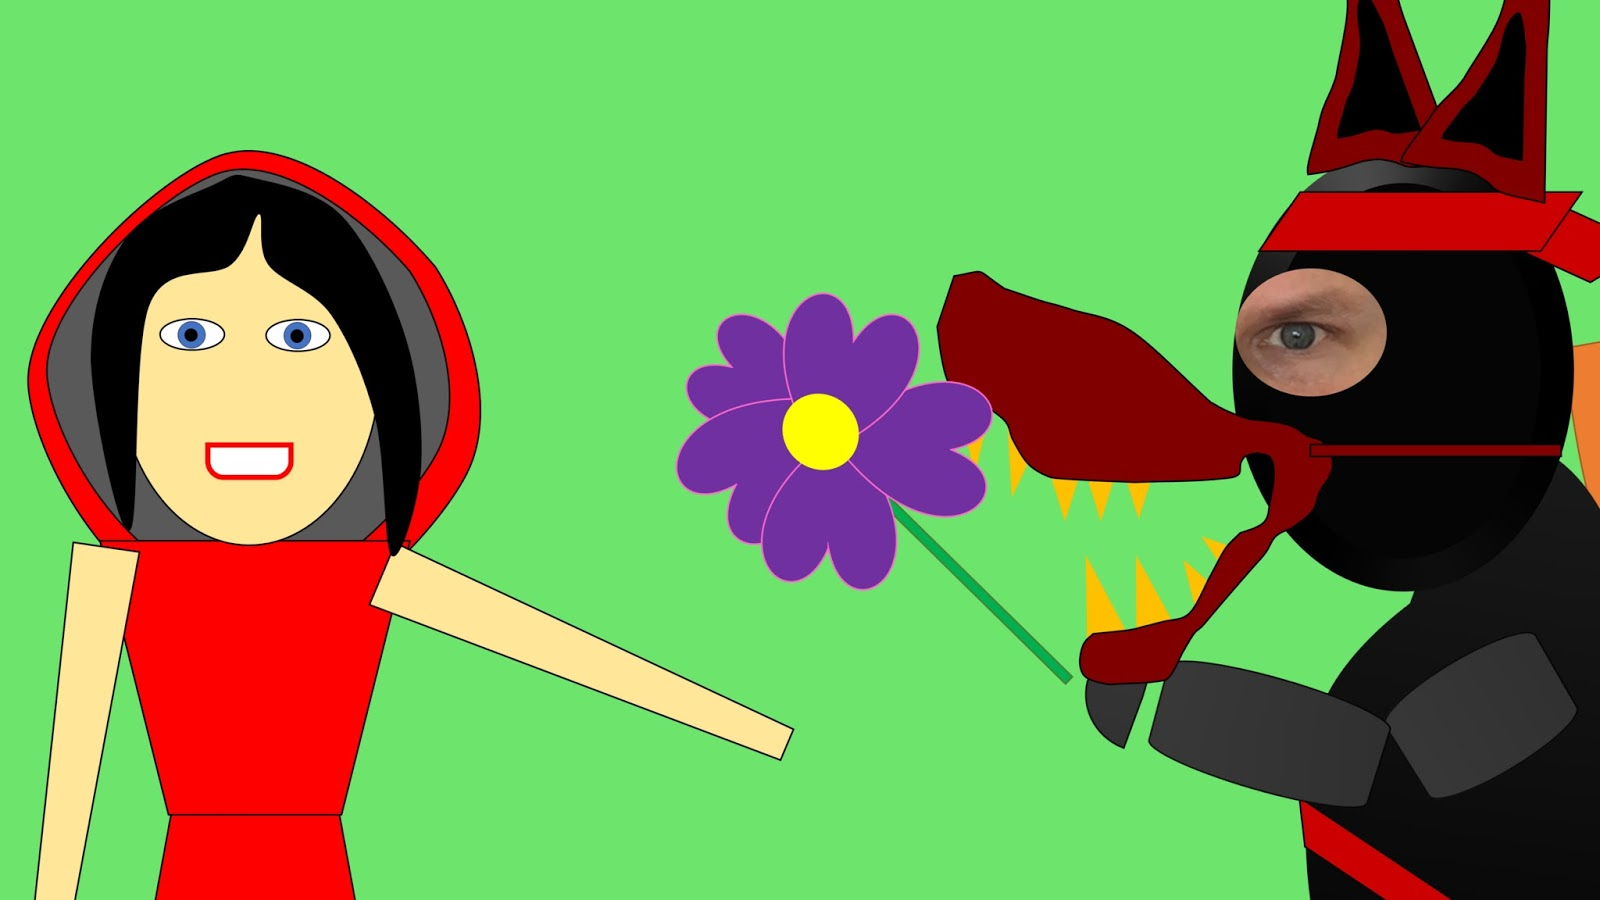 Stinky Ninja is disguised as the big bad wolf and hands Red a flower